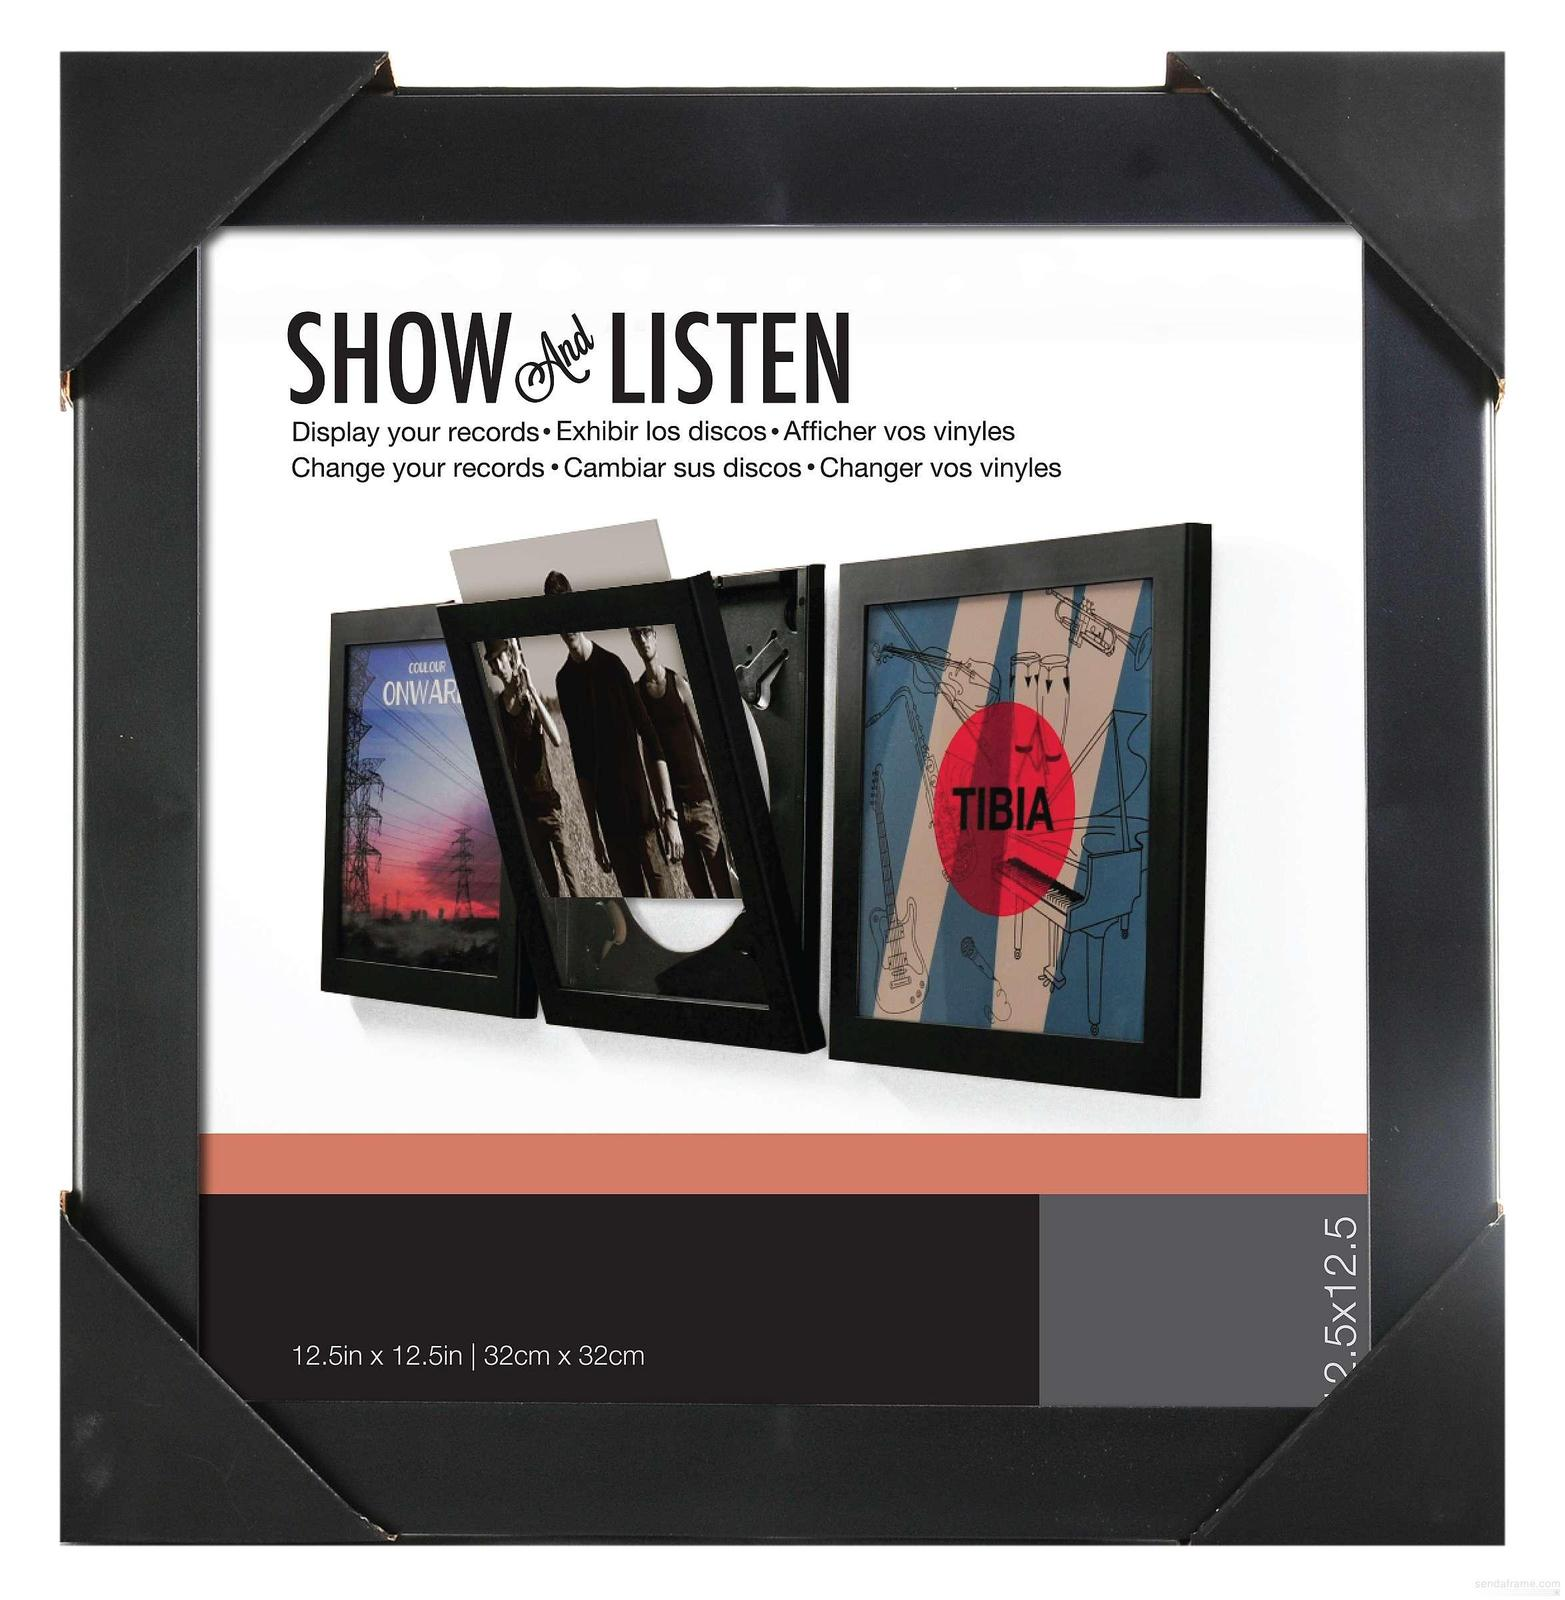 Show and Listen image